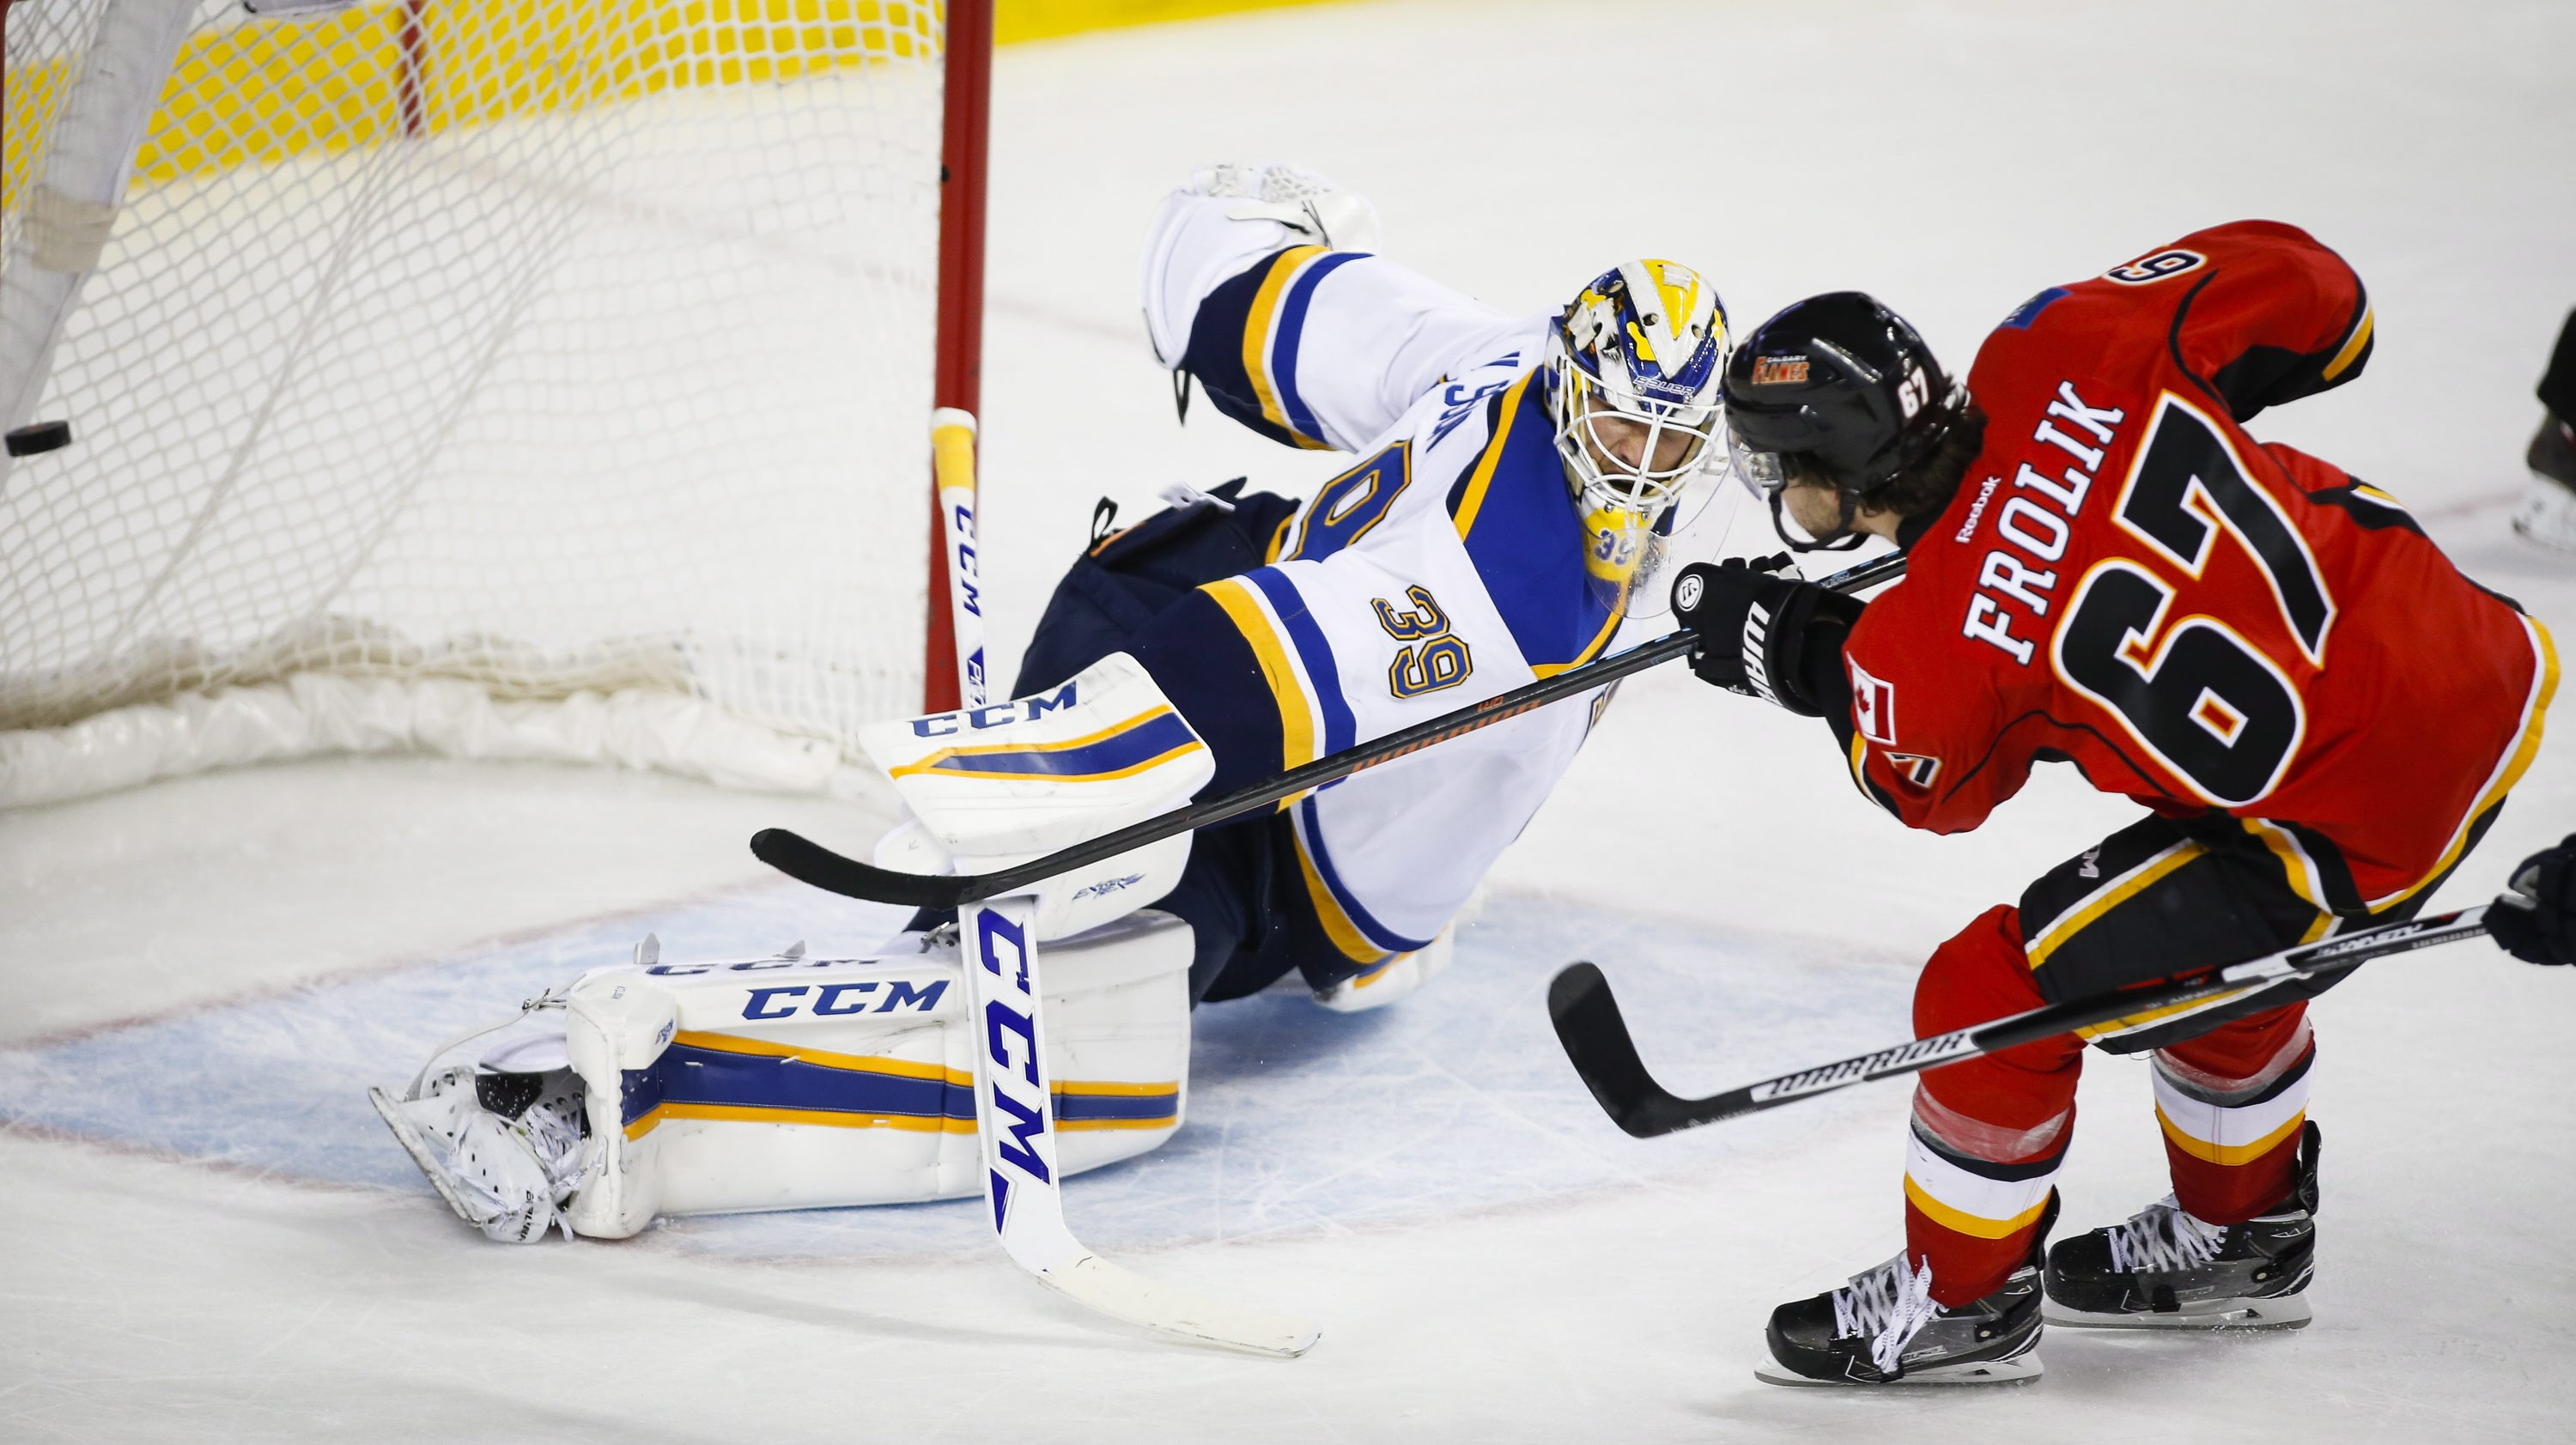 St. Louis Blues goalie Anders Nilsson, left, of Sweden, lets in a goal from Calgary Flames' Michael Frolik, of the Czech Republic, during the third period of an NHL hockey game in Calgary, Alberta, Monday, March 14, 2016. (Jeff McIntosh/The Canadian Press